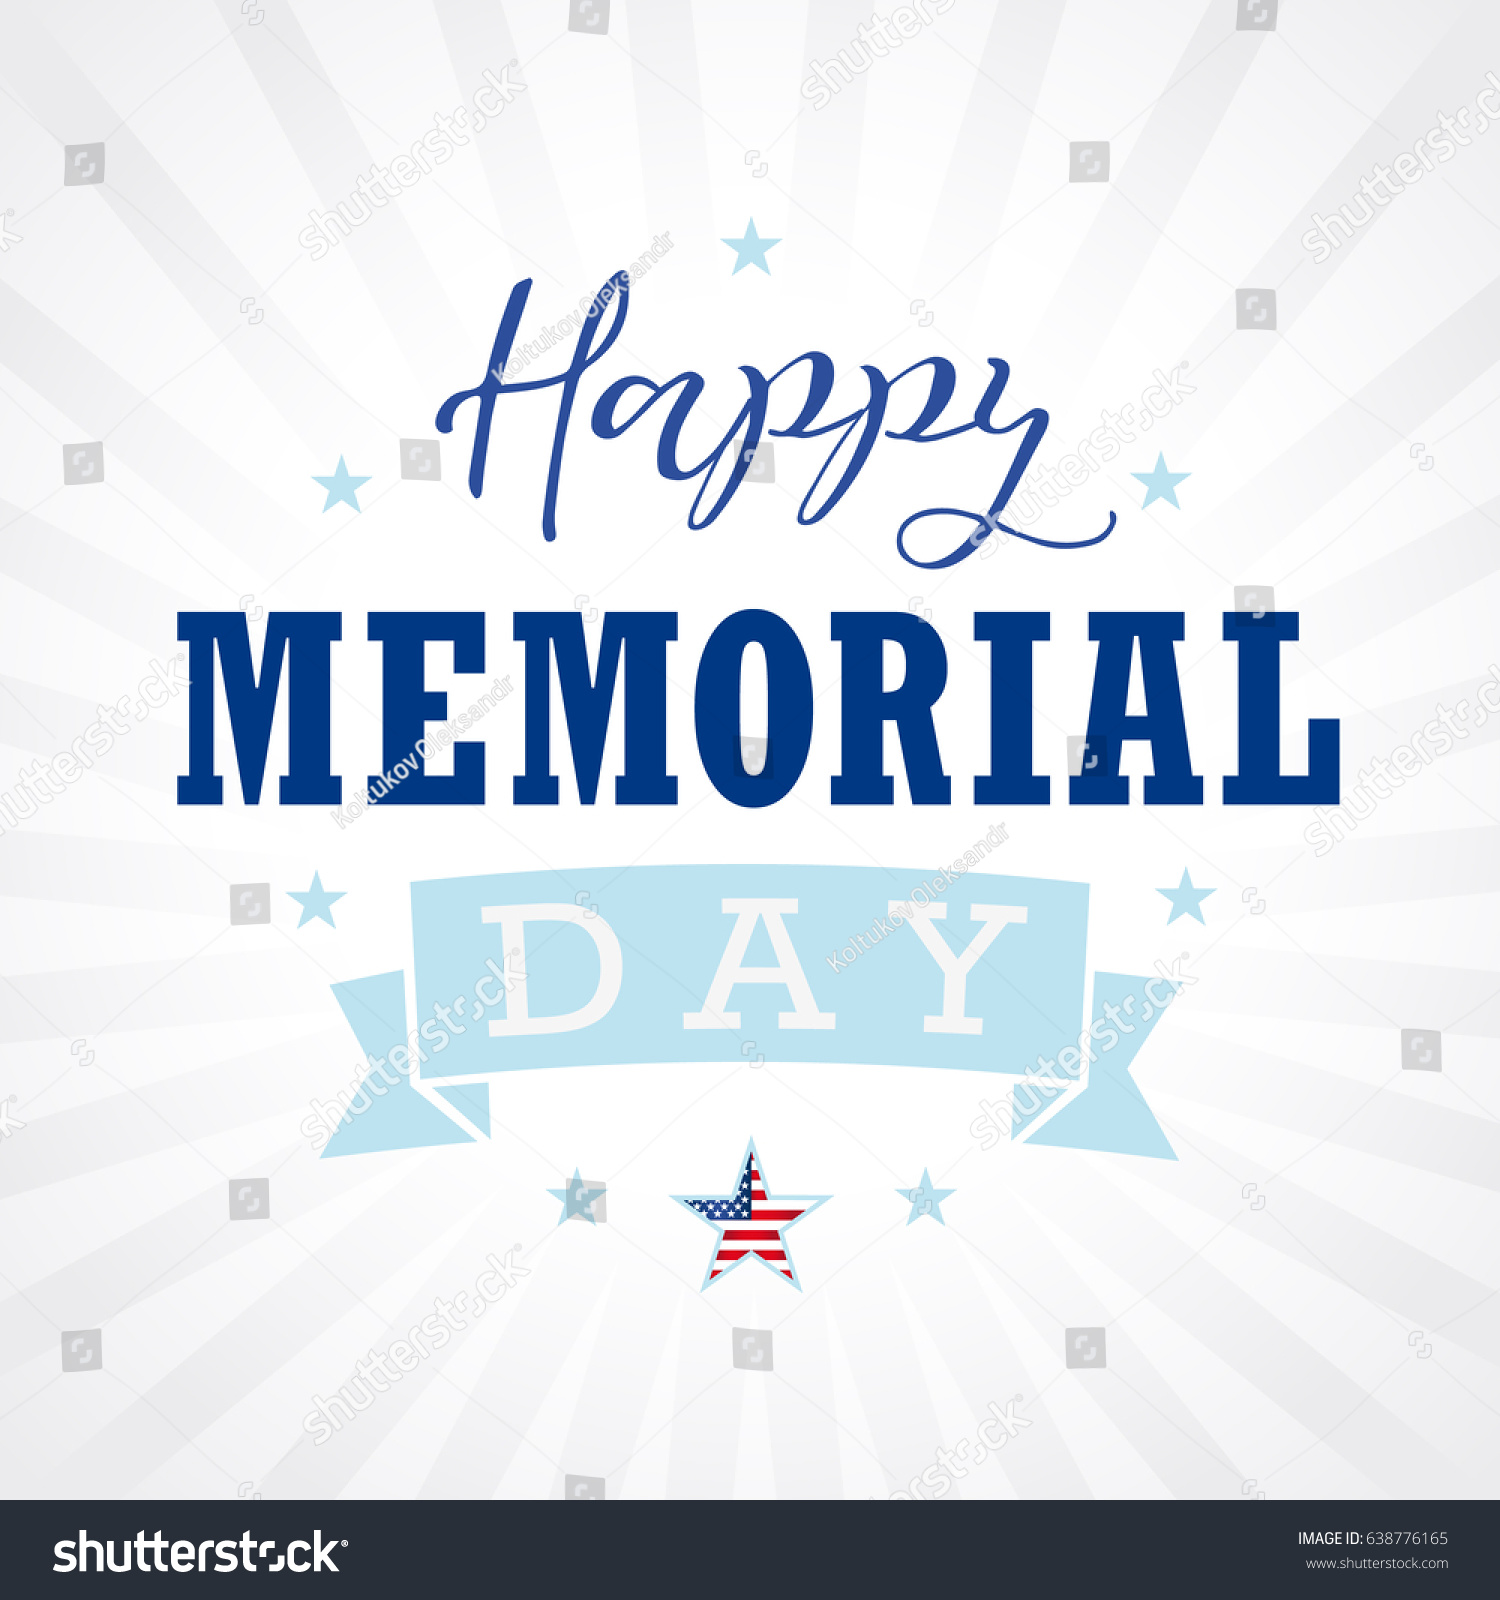 happy memorial day calligraphy banner template stock illustration